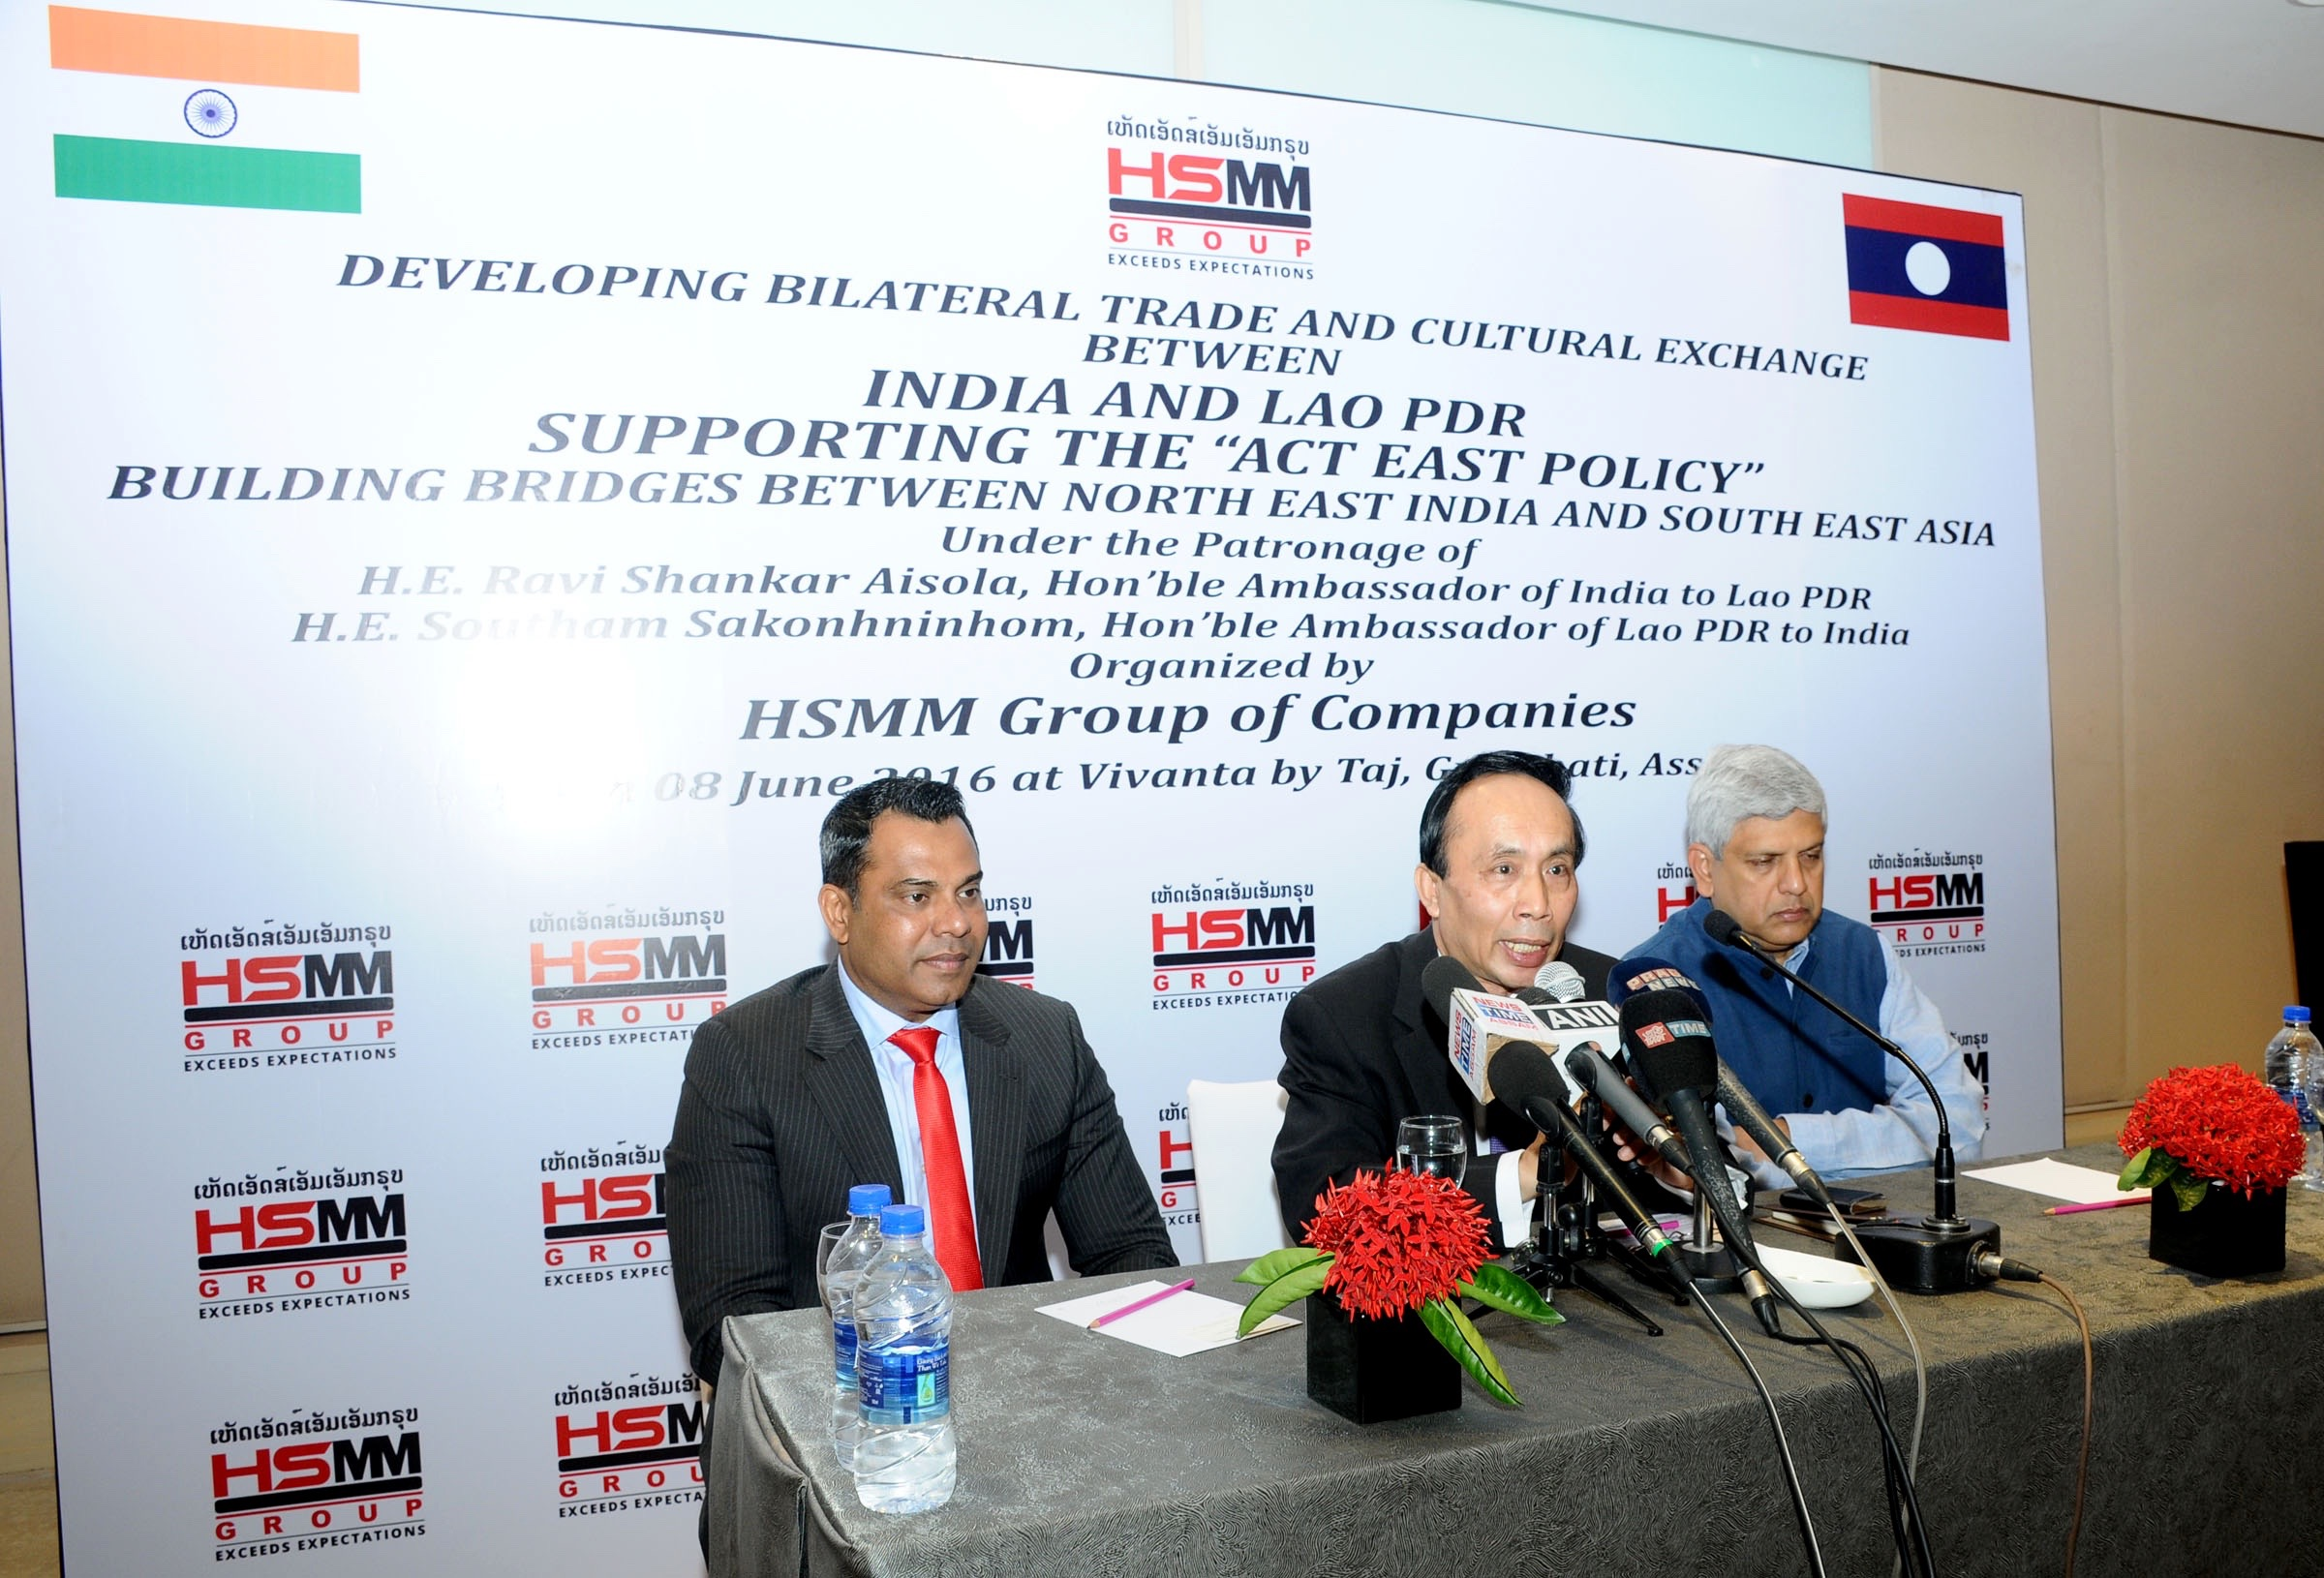 """""""Address by H.E. South Sakonhninhom, Hon'ble Ambassador of Lao PDR to India"""" - In 59 years of Diplomatic relation between India and Lao PDR, first time the Hon'ble Indian and Lao PDR Ambassadors of the respective countries in Assam, India for developing the Bilateral Trade and Cultural Exchange between Lao PDR and Assam (India) - Supporting the Act East Policy on 8th June 2016 (organized by HSMM Group of Companies)"""